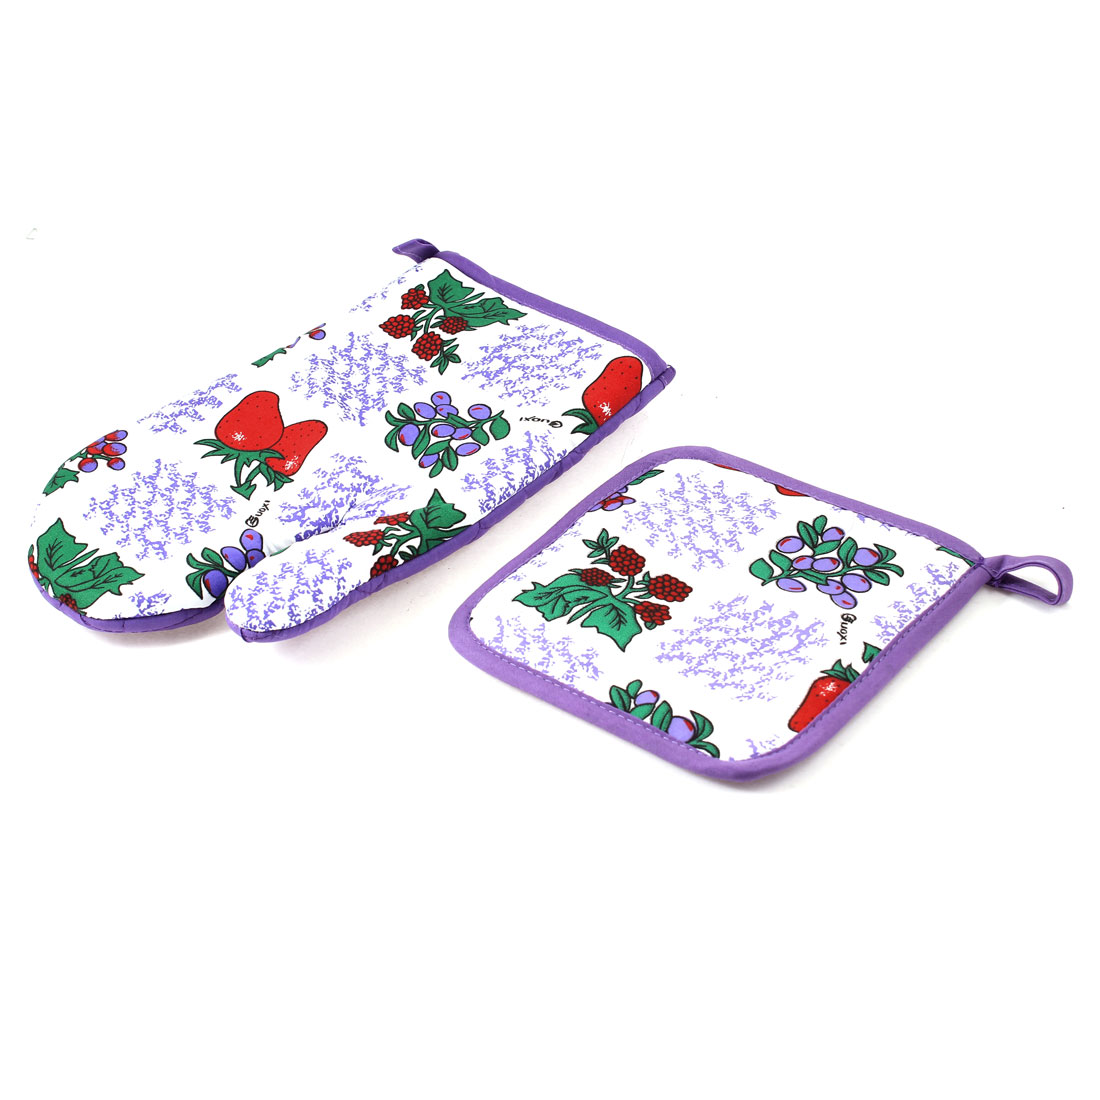 Kitchen Microwave Oven Baking Heat Hot Resistant Plant Pattern Mitten Glove Pad 2 in 1 Purple White